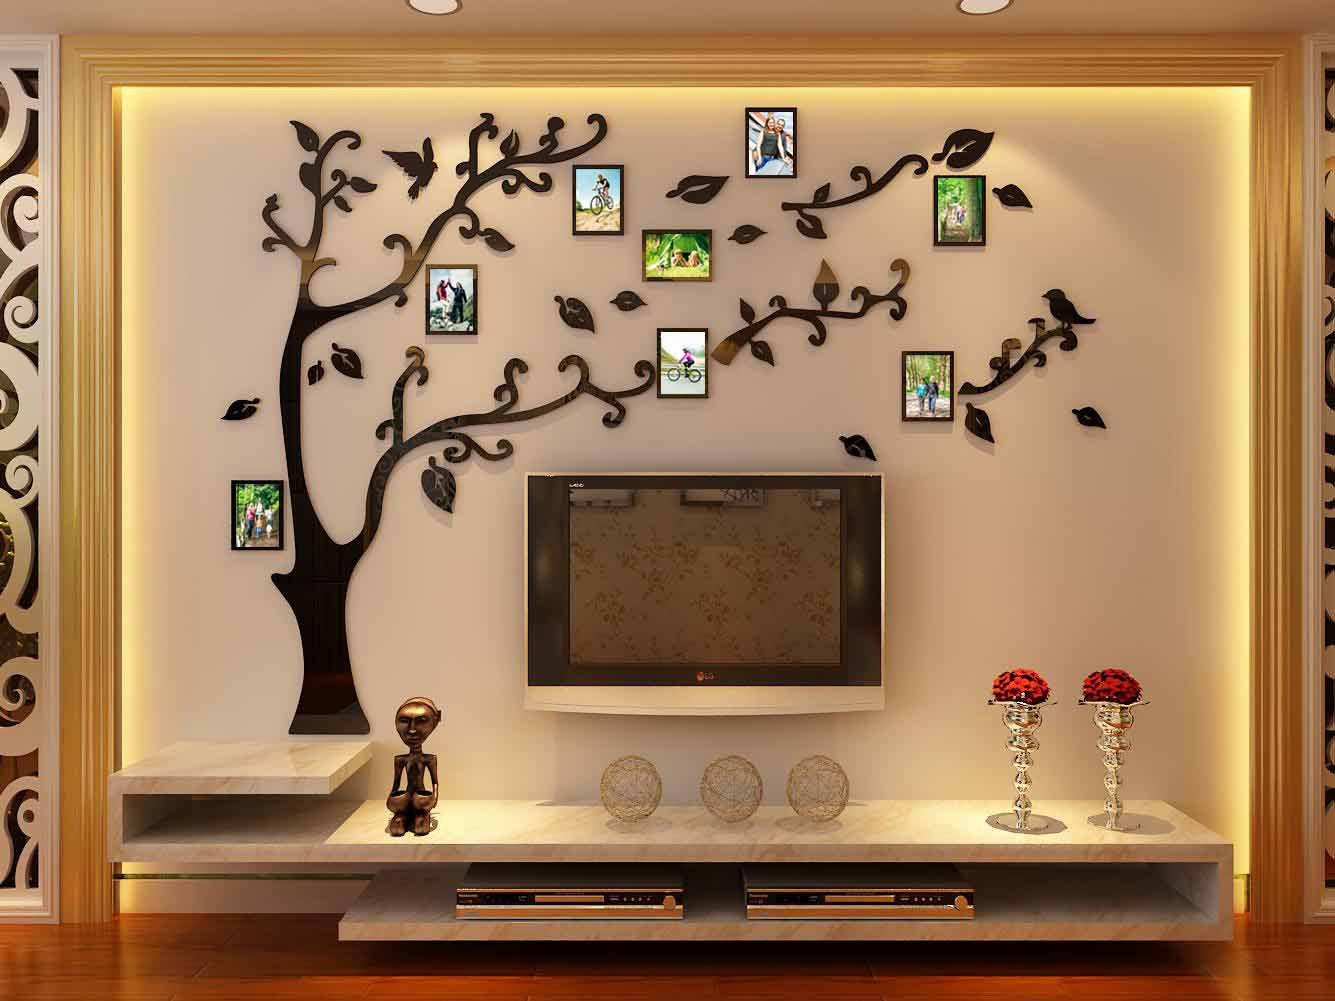 3d Picture Frames Tree Wall Murals for Living Room Bedroom Sofa Backdrop Tv Wall Background, Originality Stickers, Wall Decor Decal Sticker (70(H) x 98(W) inches) by DecorSmart (Image #5)